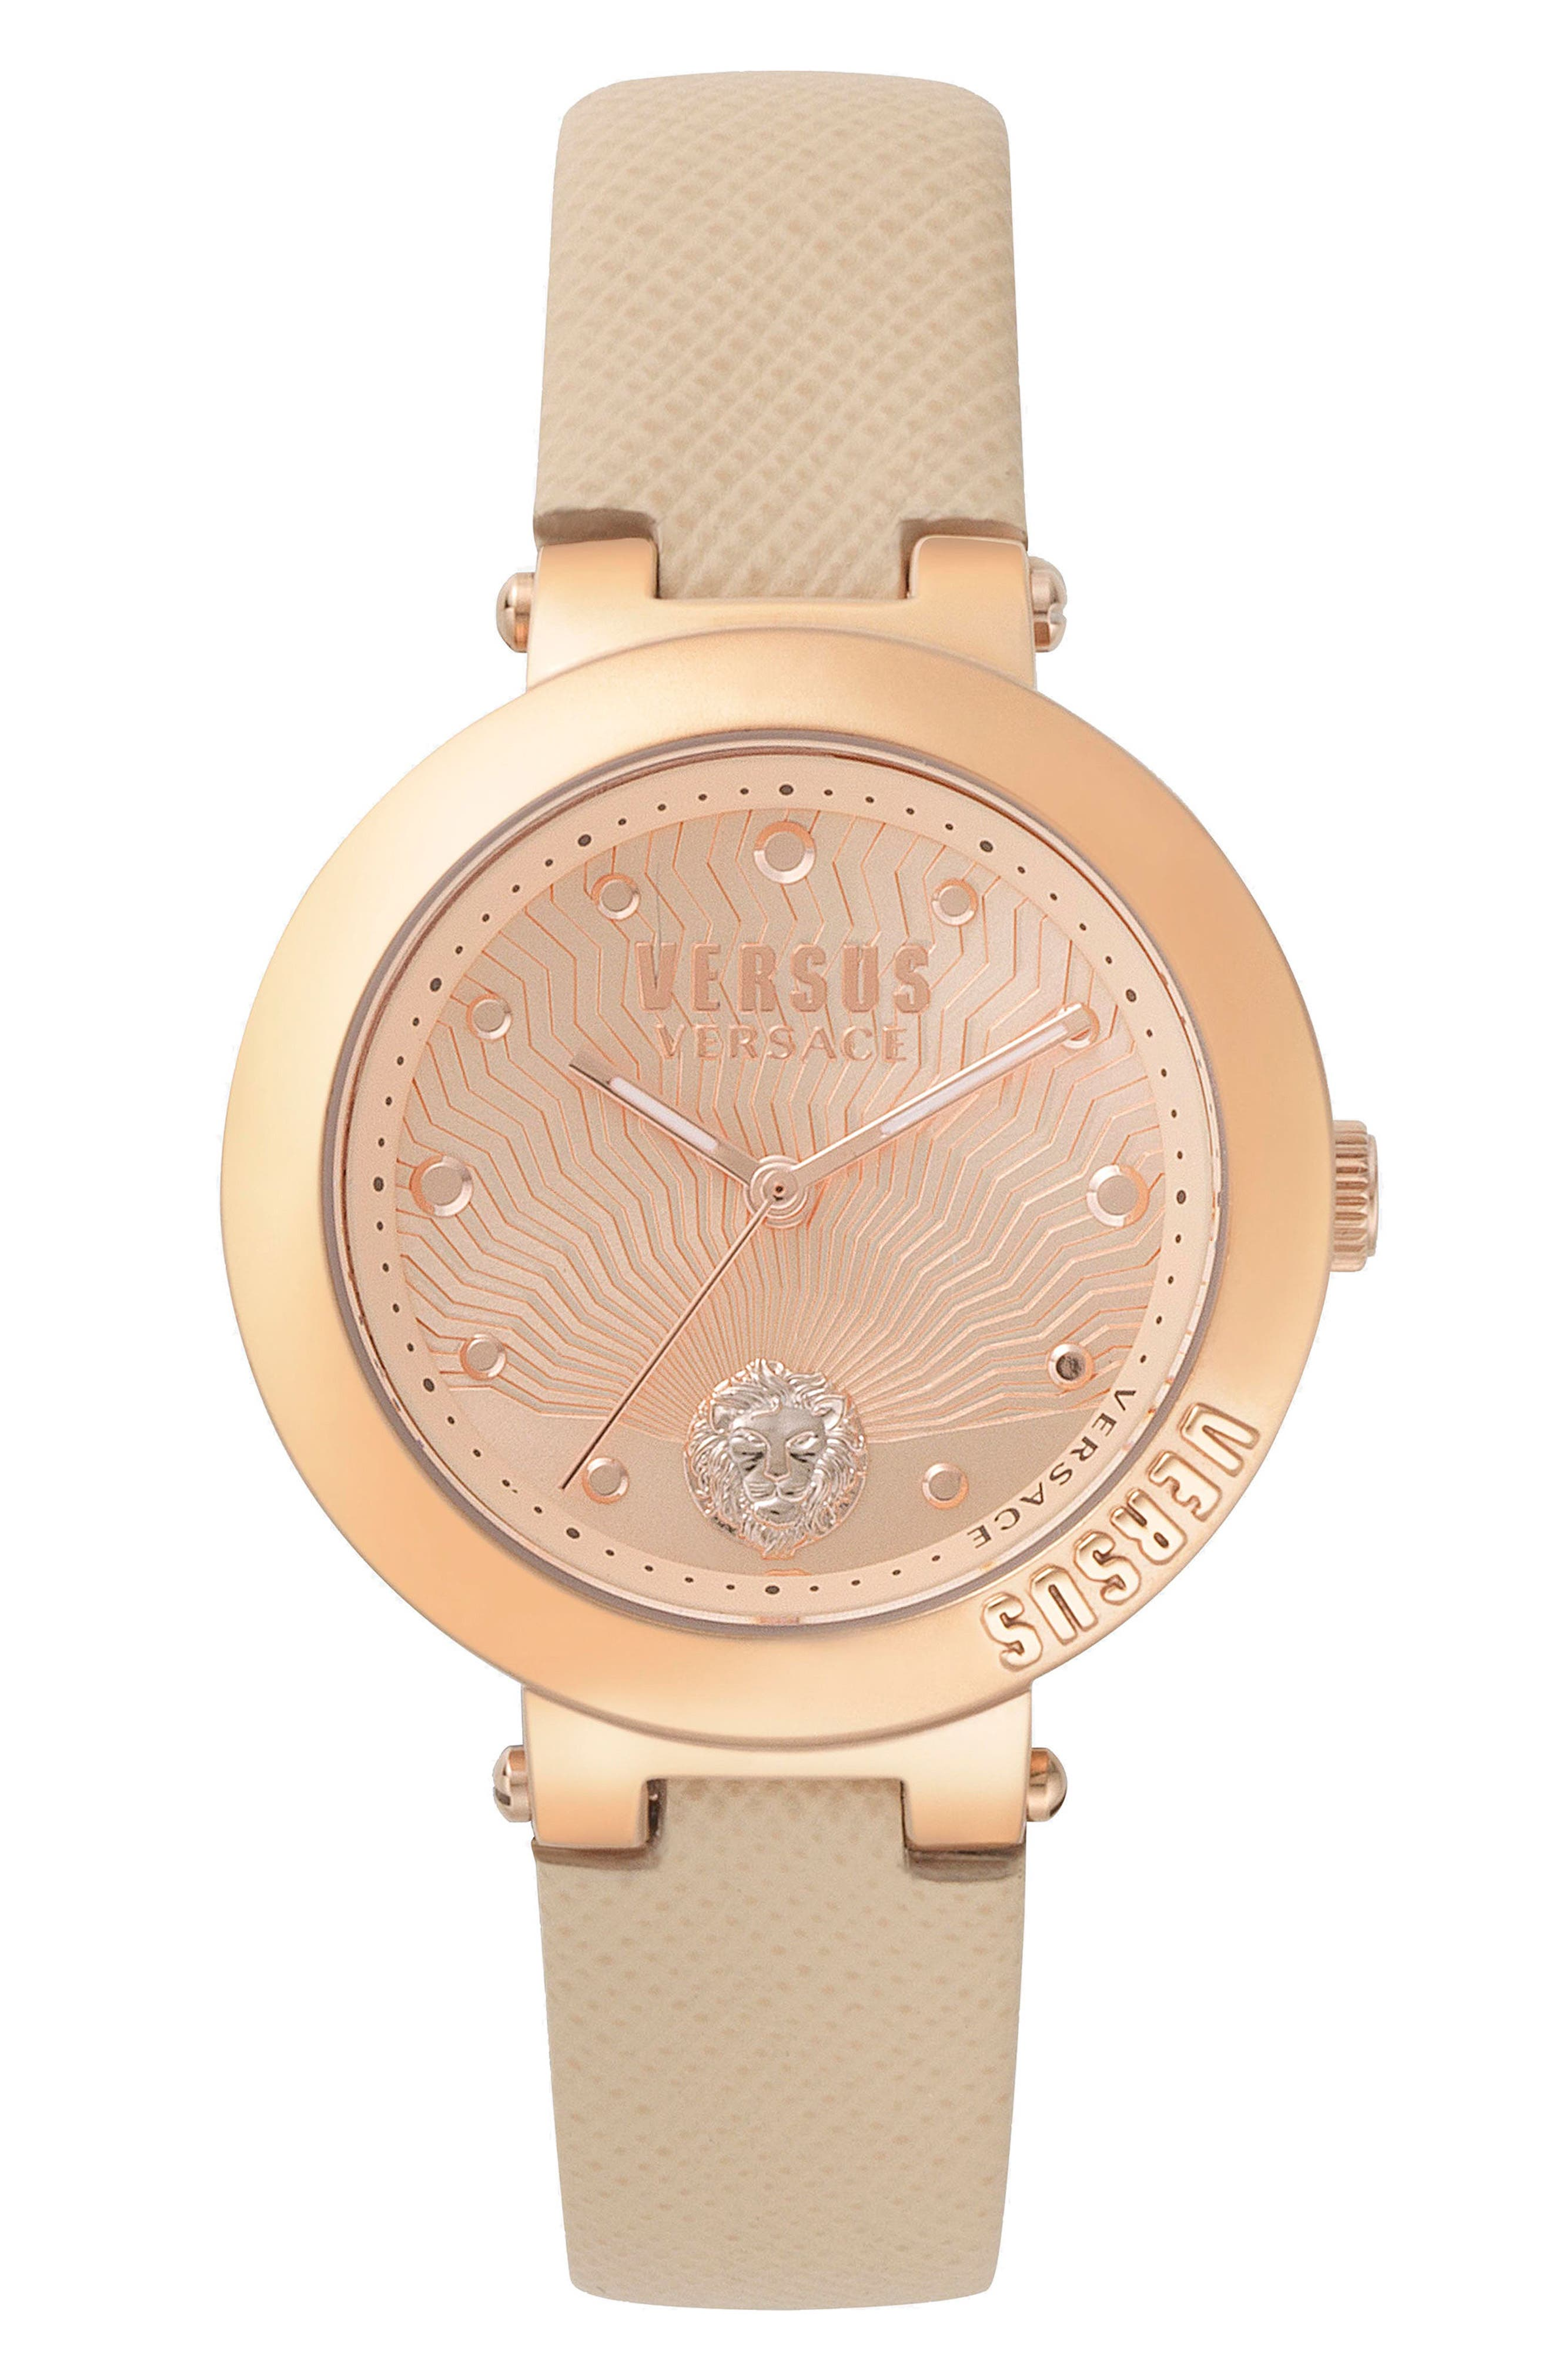 VERSUS by Versace Lantau Island Leather Strap Watch, 36mm,                             Main thumbnail 2, color,